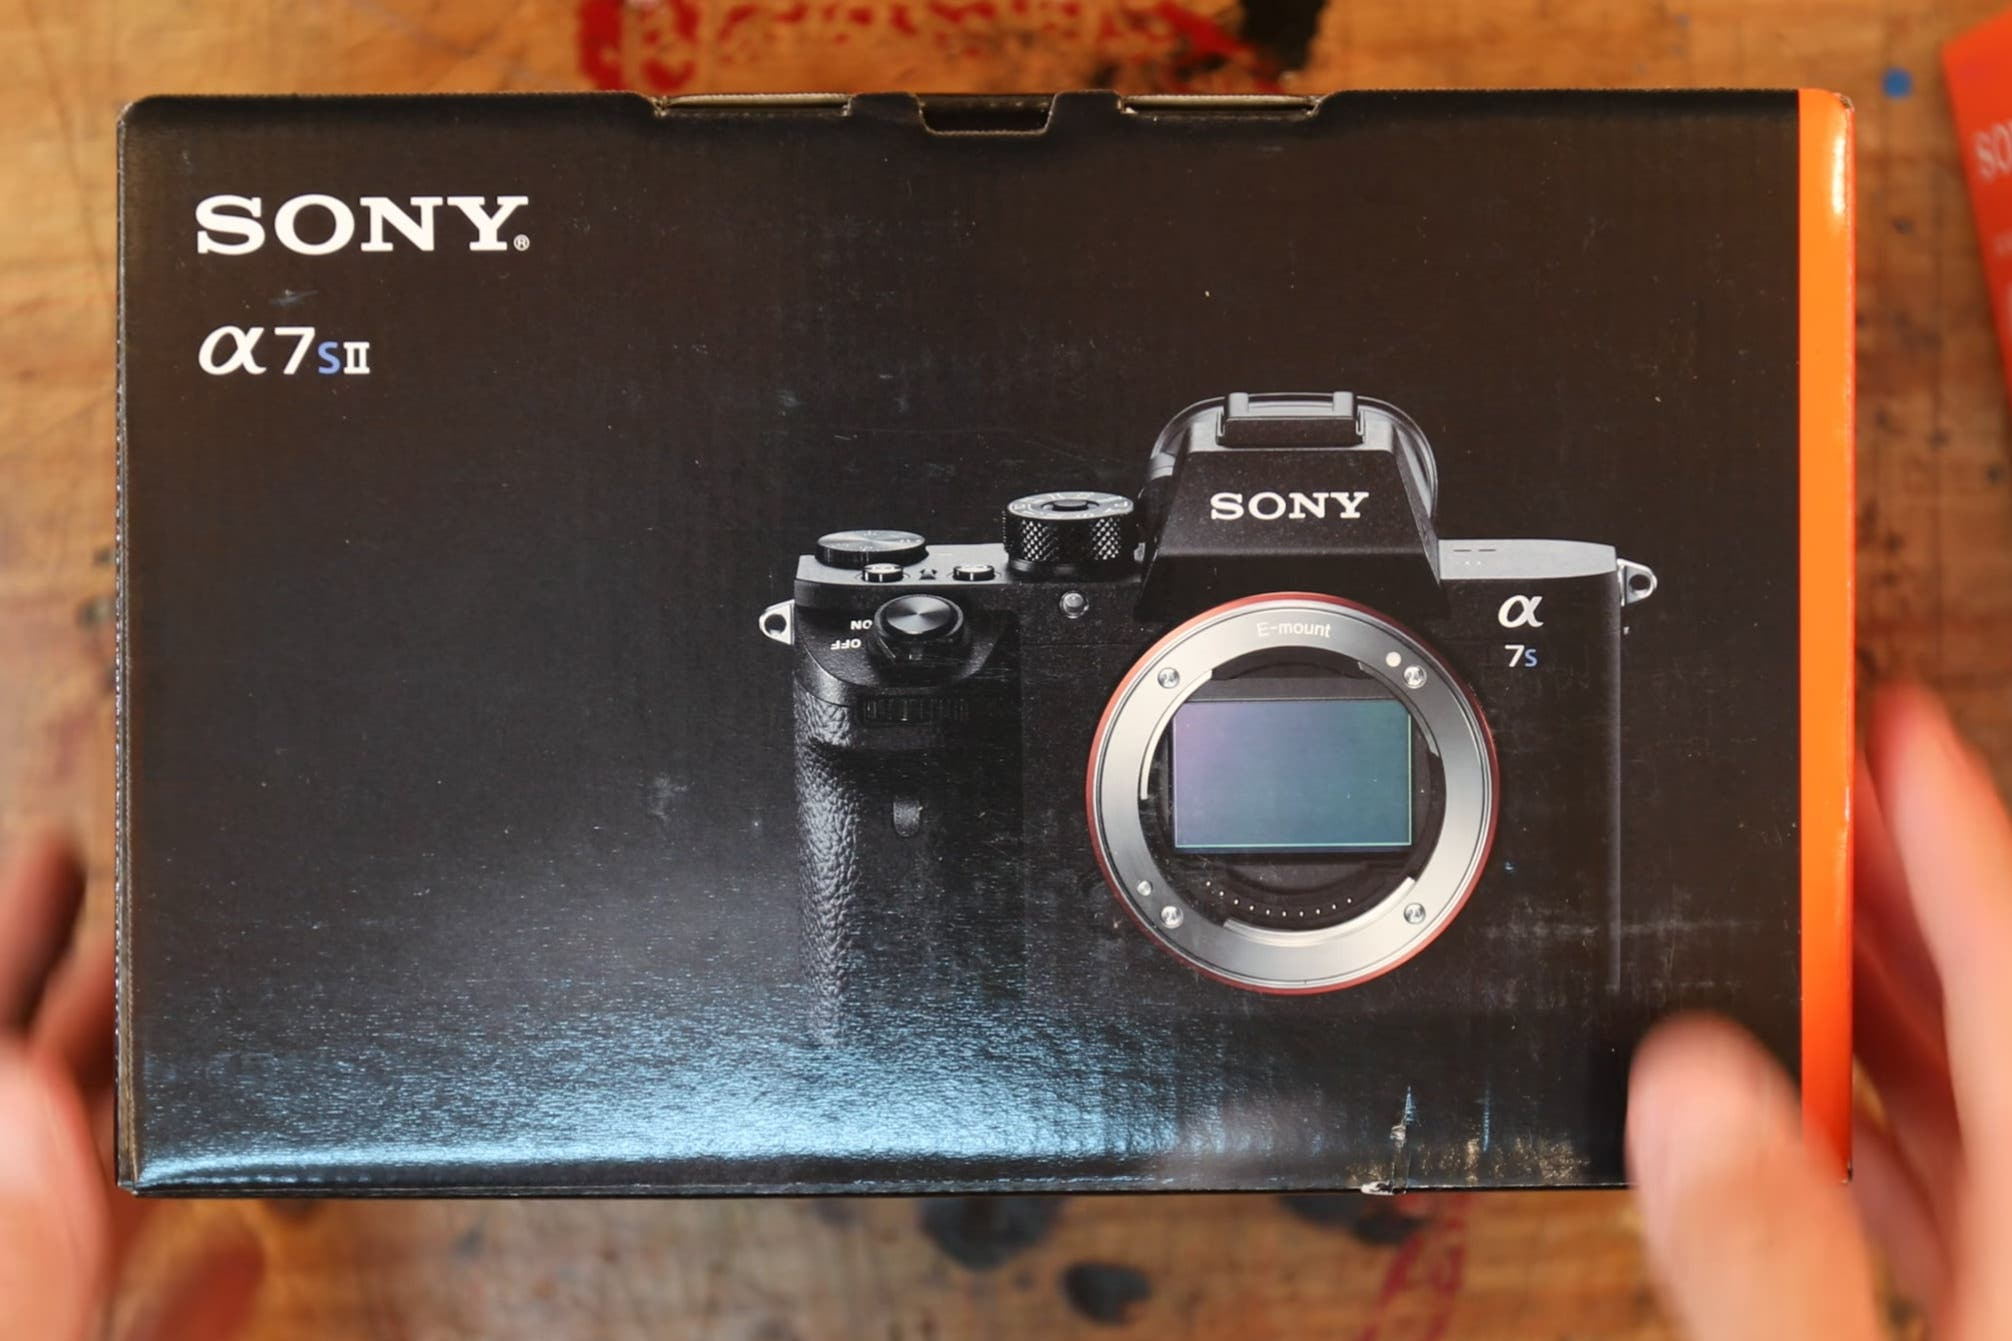 Casey Neistat Gives Into The Dark Side, Goes Sony